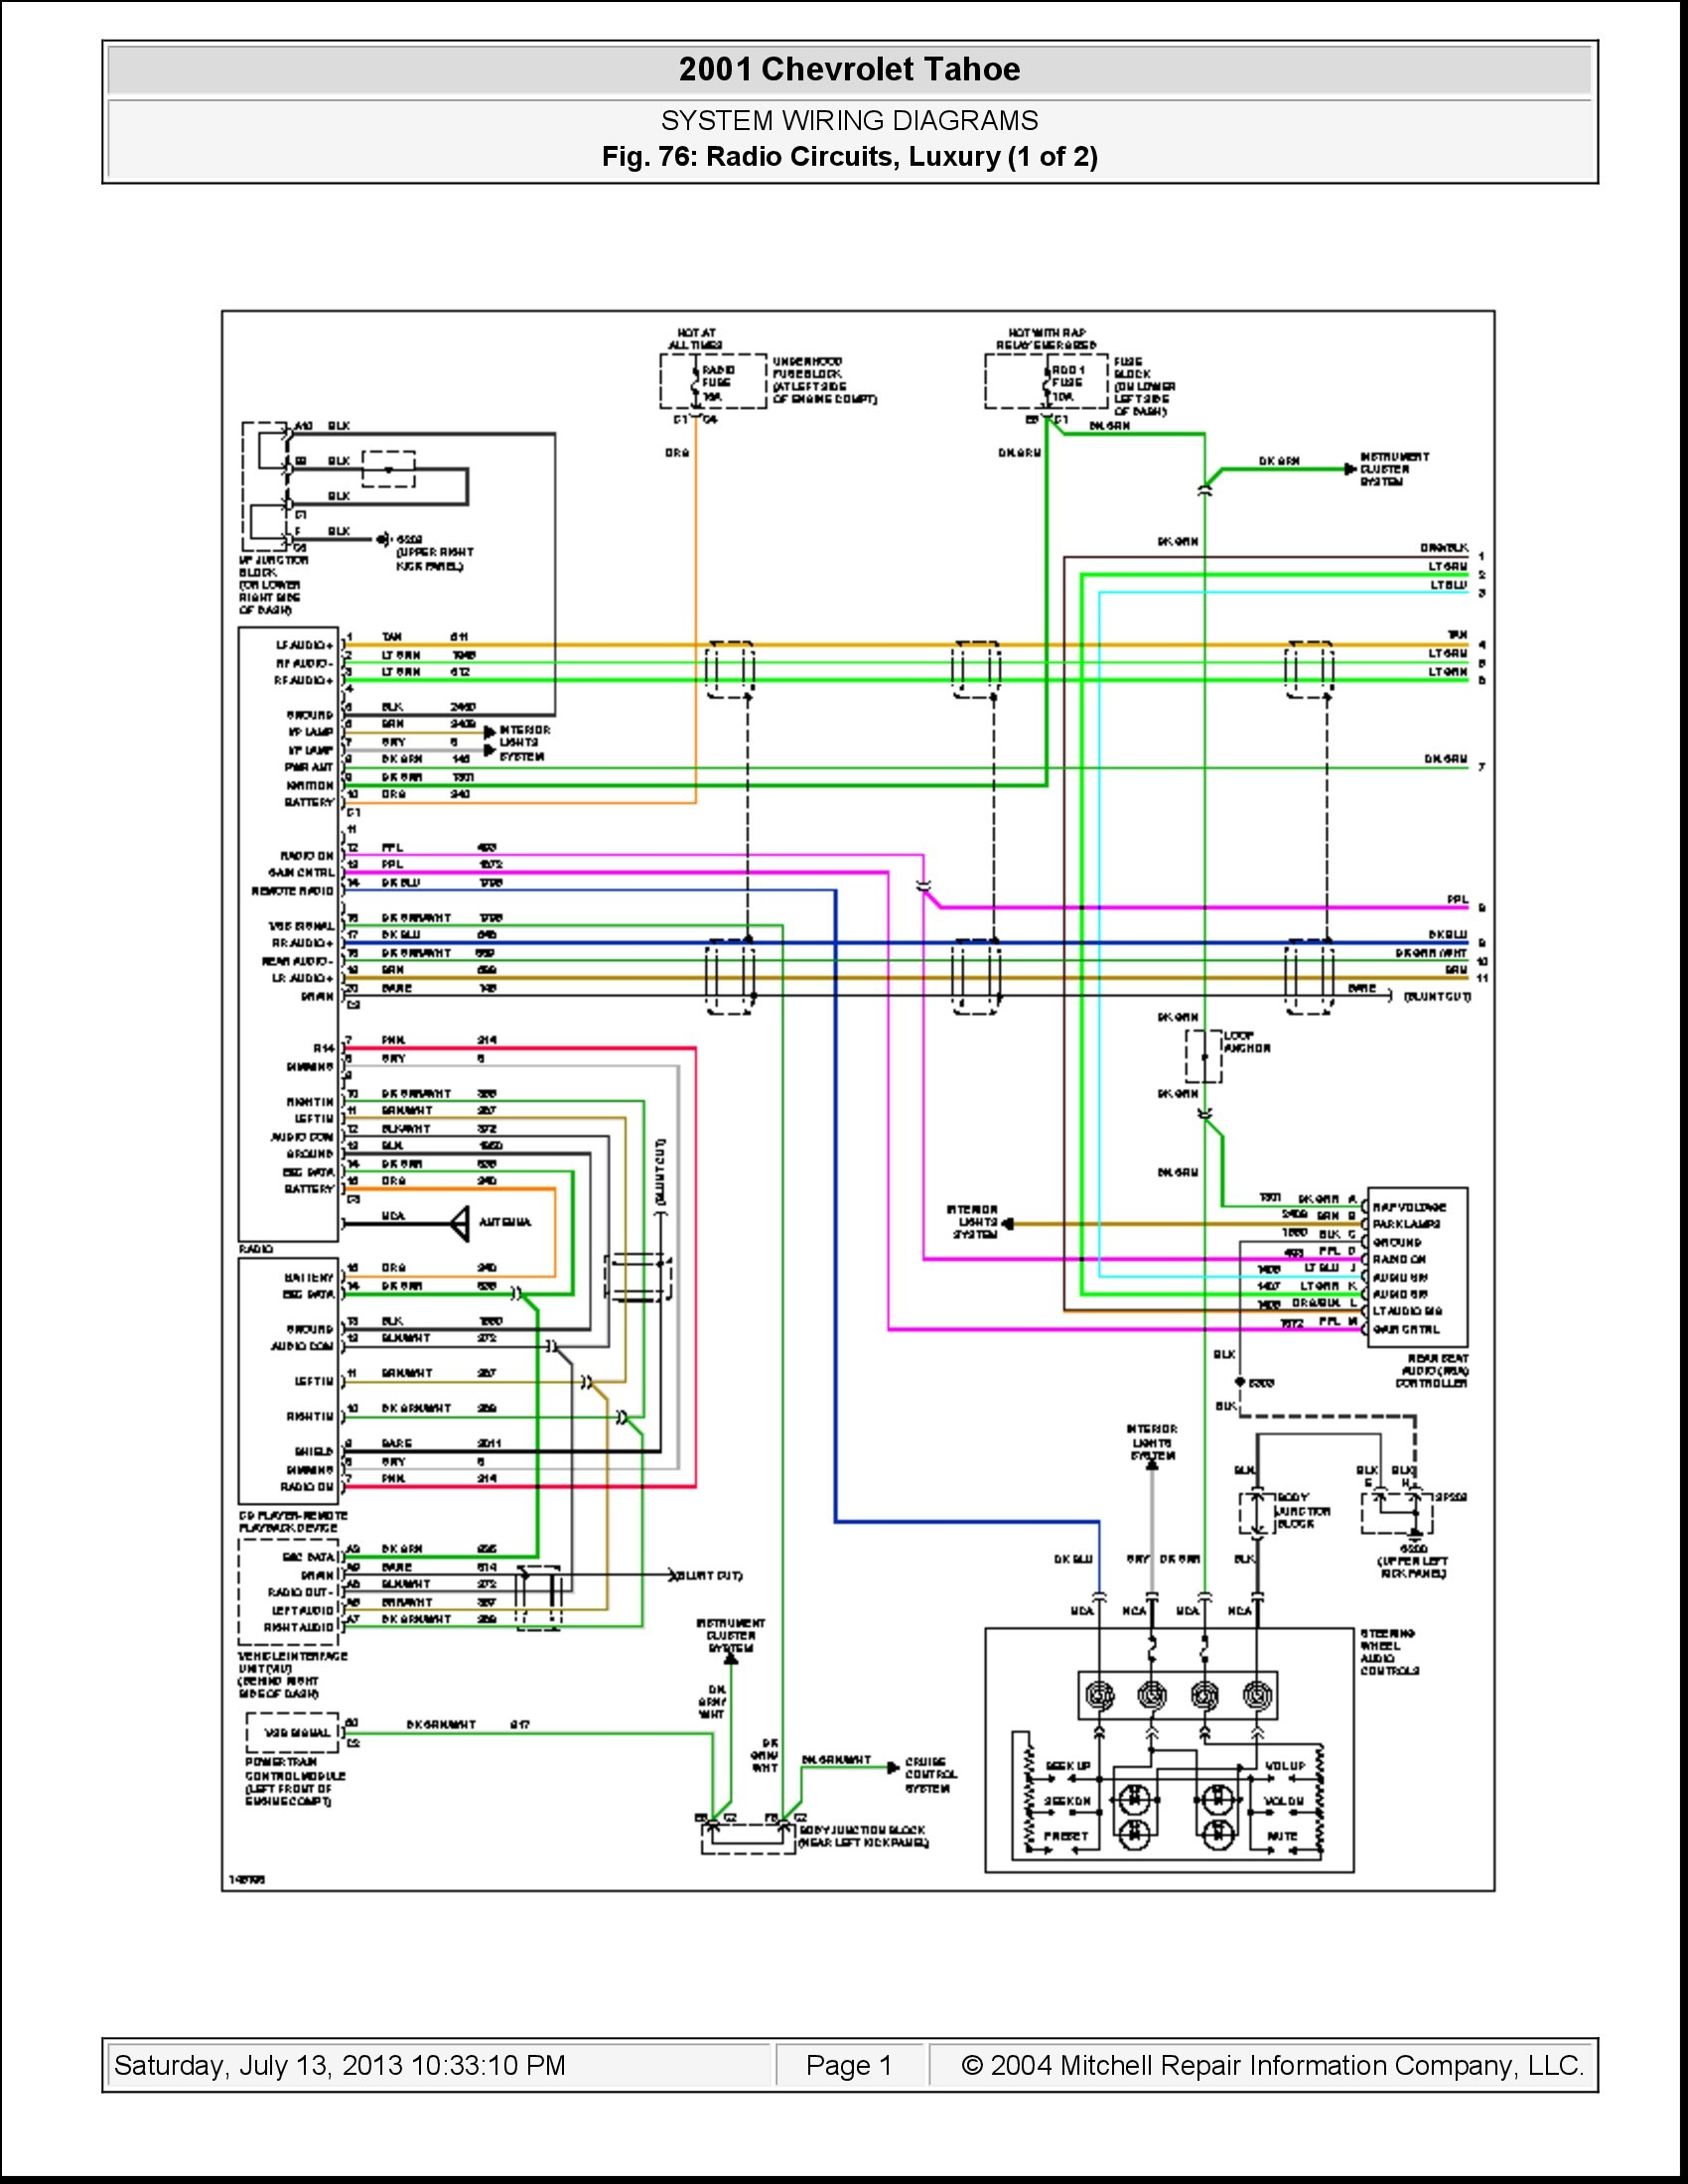 2002 Chevrolet Venture Alternator Wiring Radio Diagram 3 4l Gm For Chevy Application Rh Cleanairclub Co Wire Parts